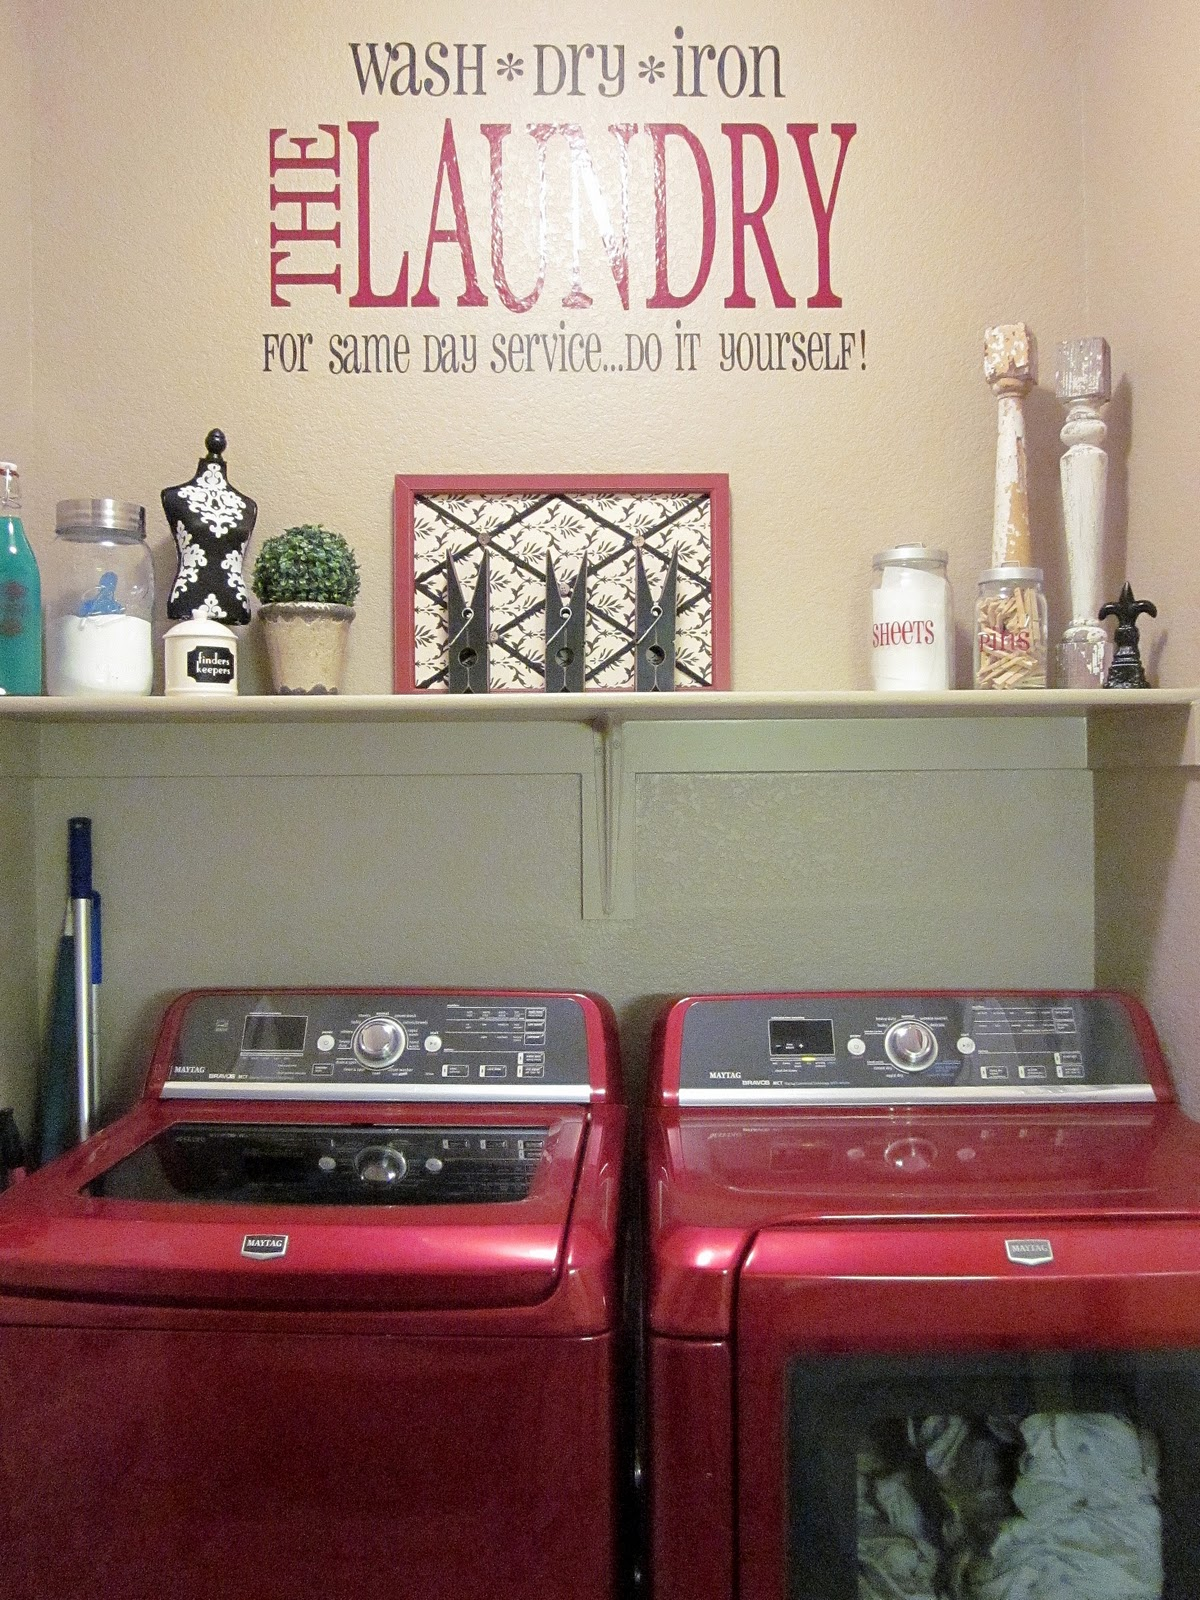 Decorative Laundry Items Adorable Antics Laundry Room Decorations On No Budget